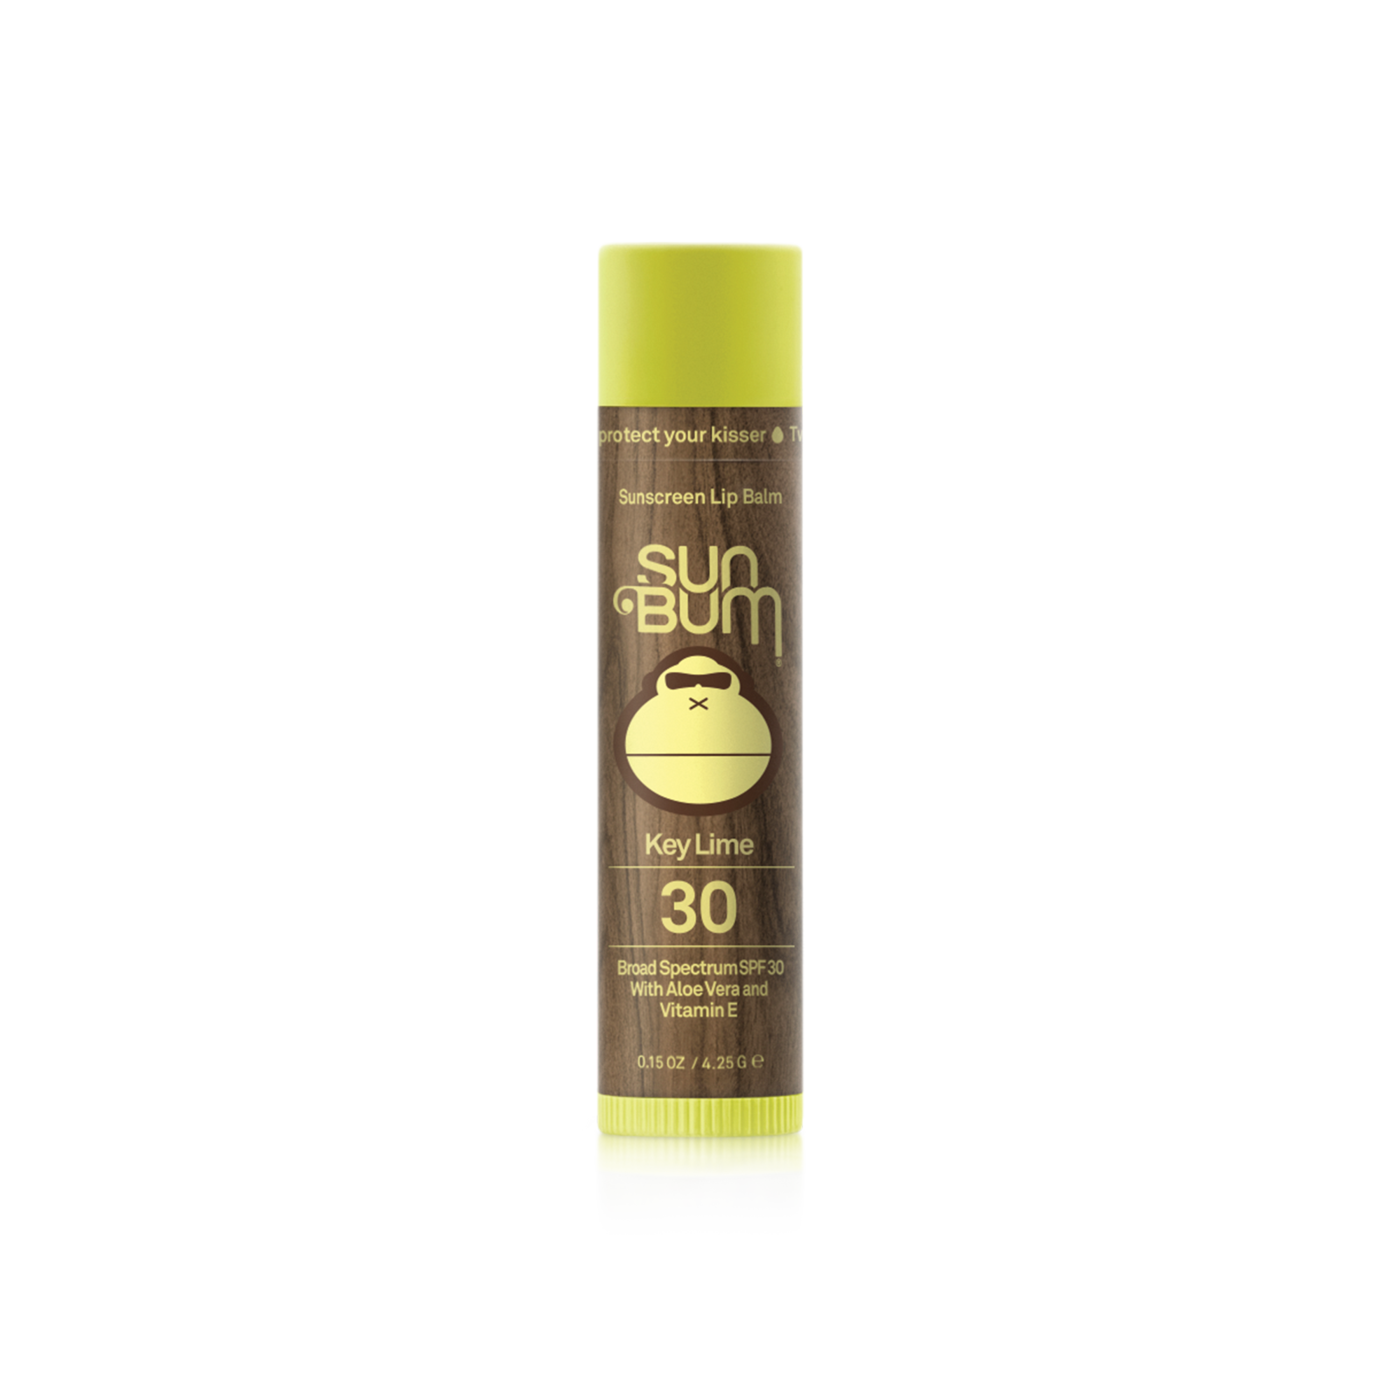 1390006 ORIGINAL SPF 30 SUNSCREEN LIP BALM KEY LIME 21-09/21 13-01/22 3-03/22